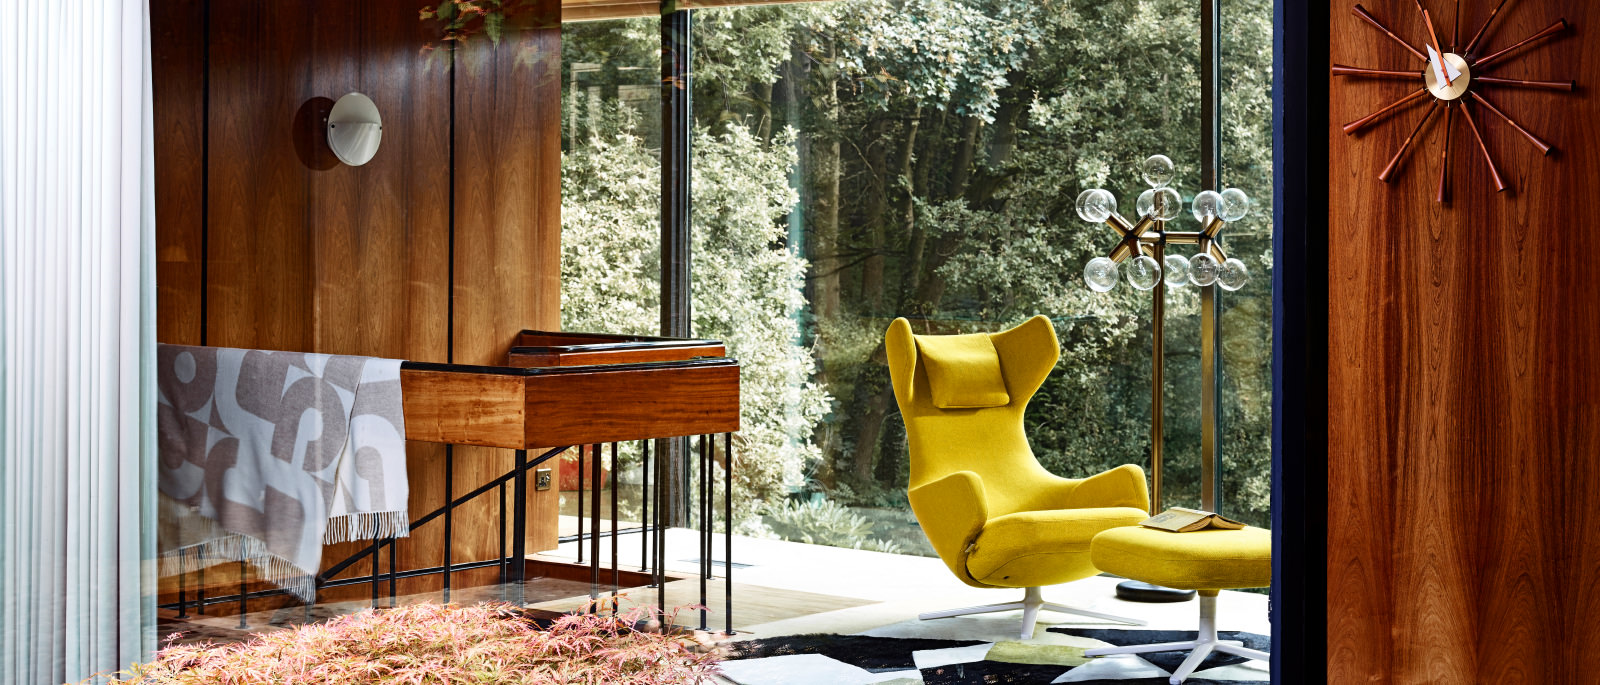 Vitra Winteraktion 2017 – Lounge Chair und Grand Repos in Aktion.